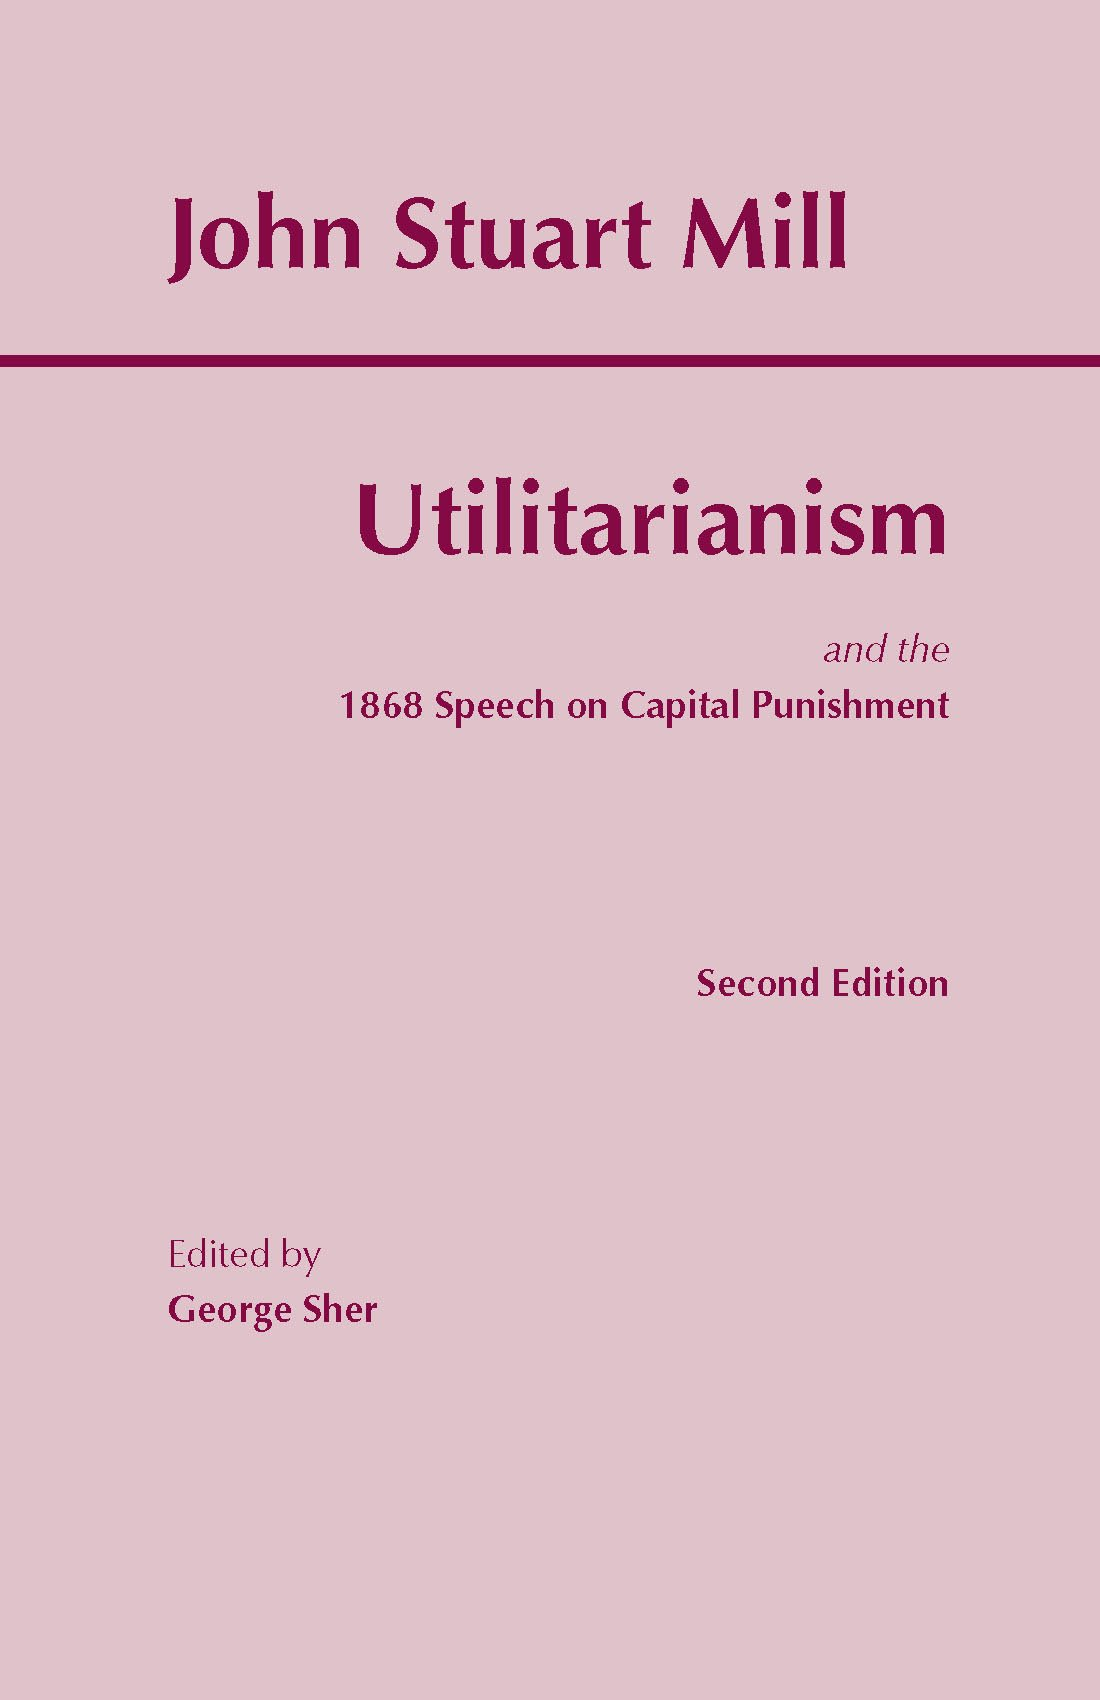 utilitarianism amazon co uk john stuart mill george sher utilitarianism amazon co uk john stuart mill george sher 8601404273193 books